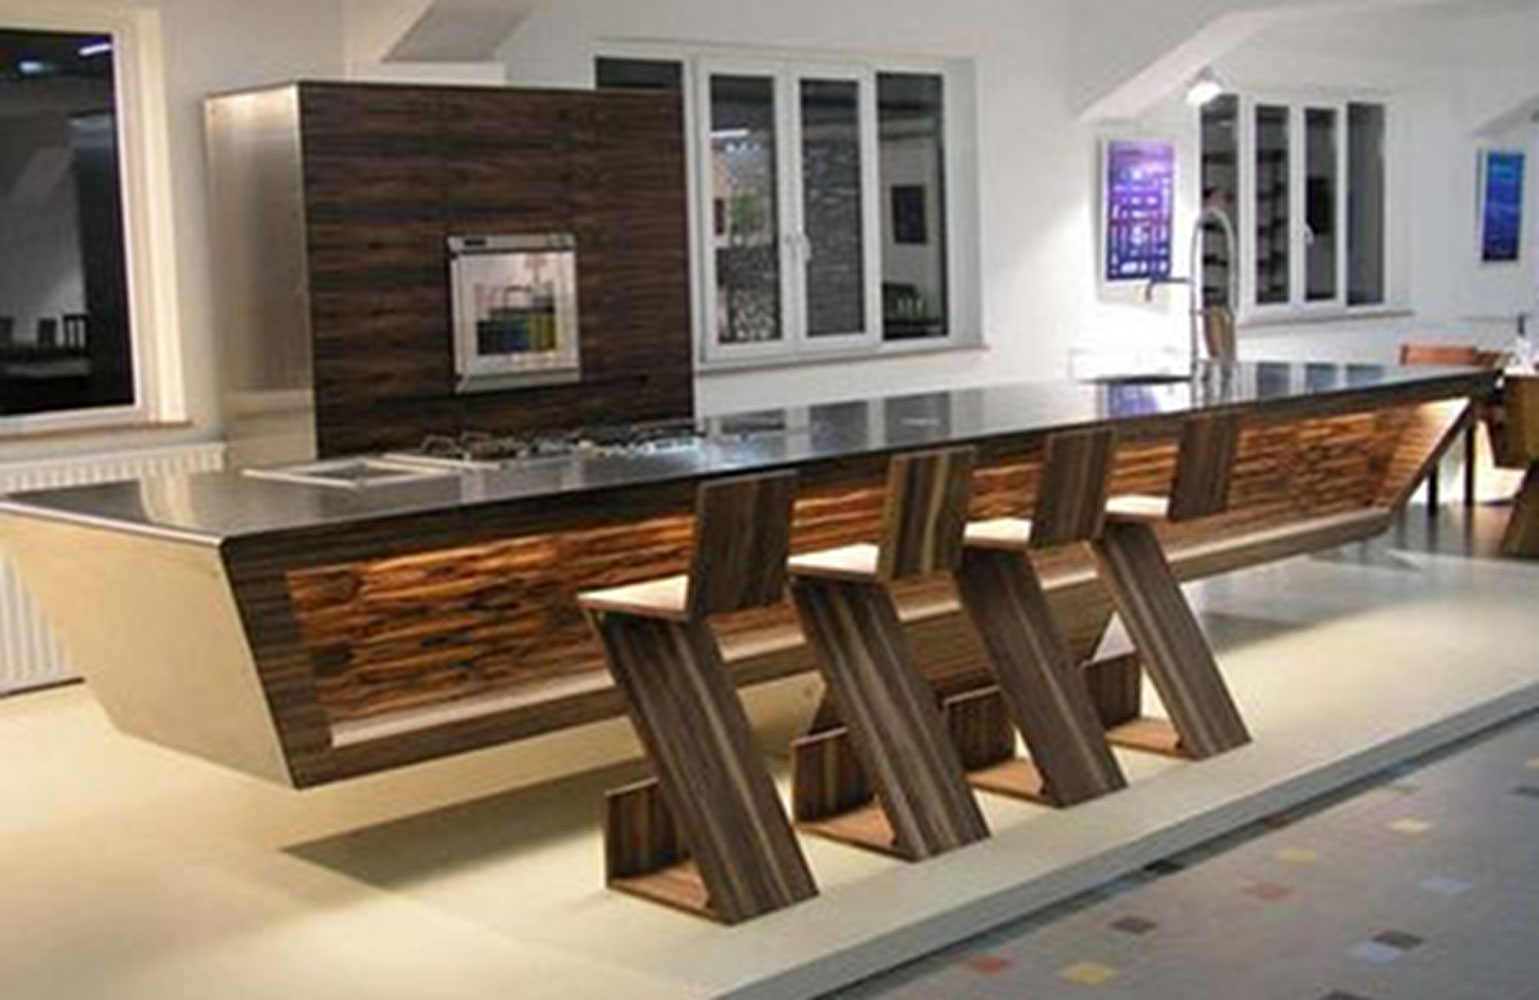 metal + wood: a match made in -- interior design -- heaven | huffpost